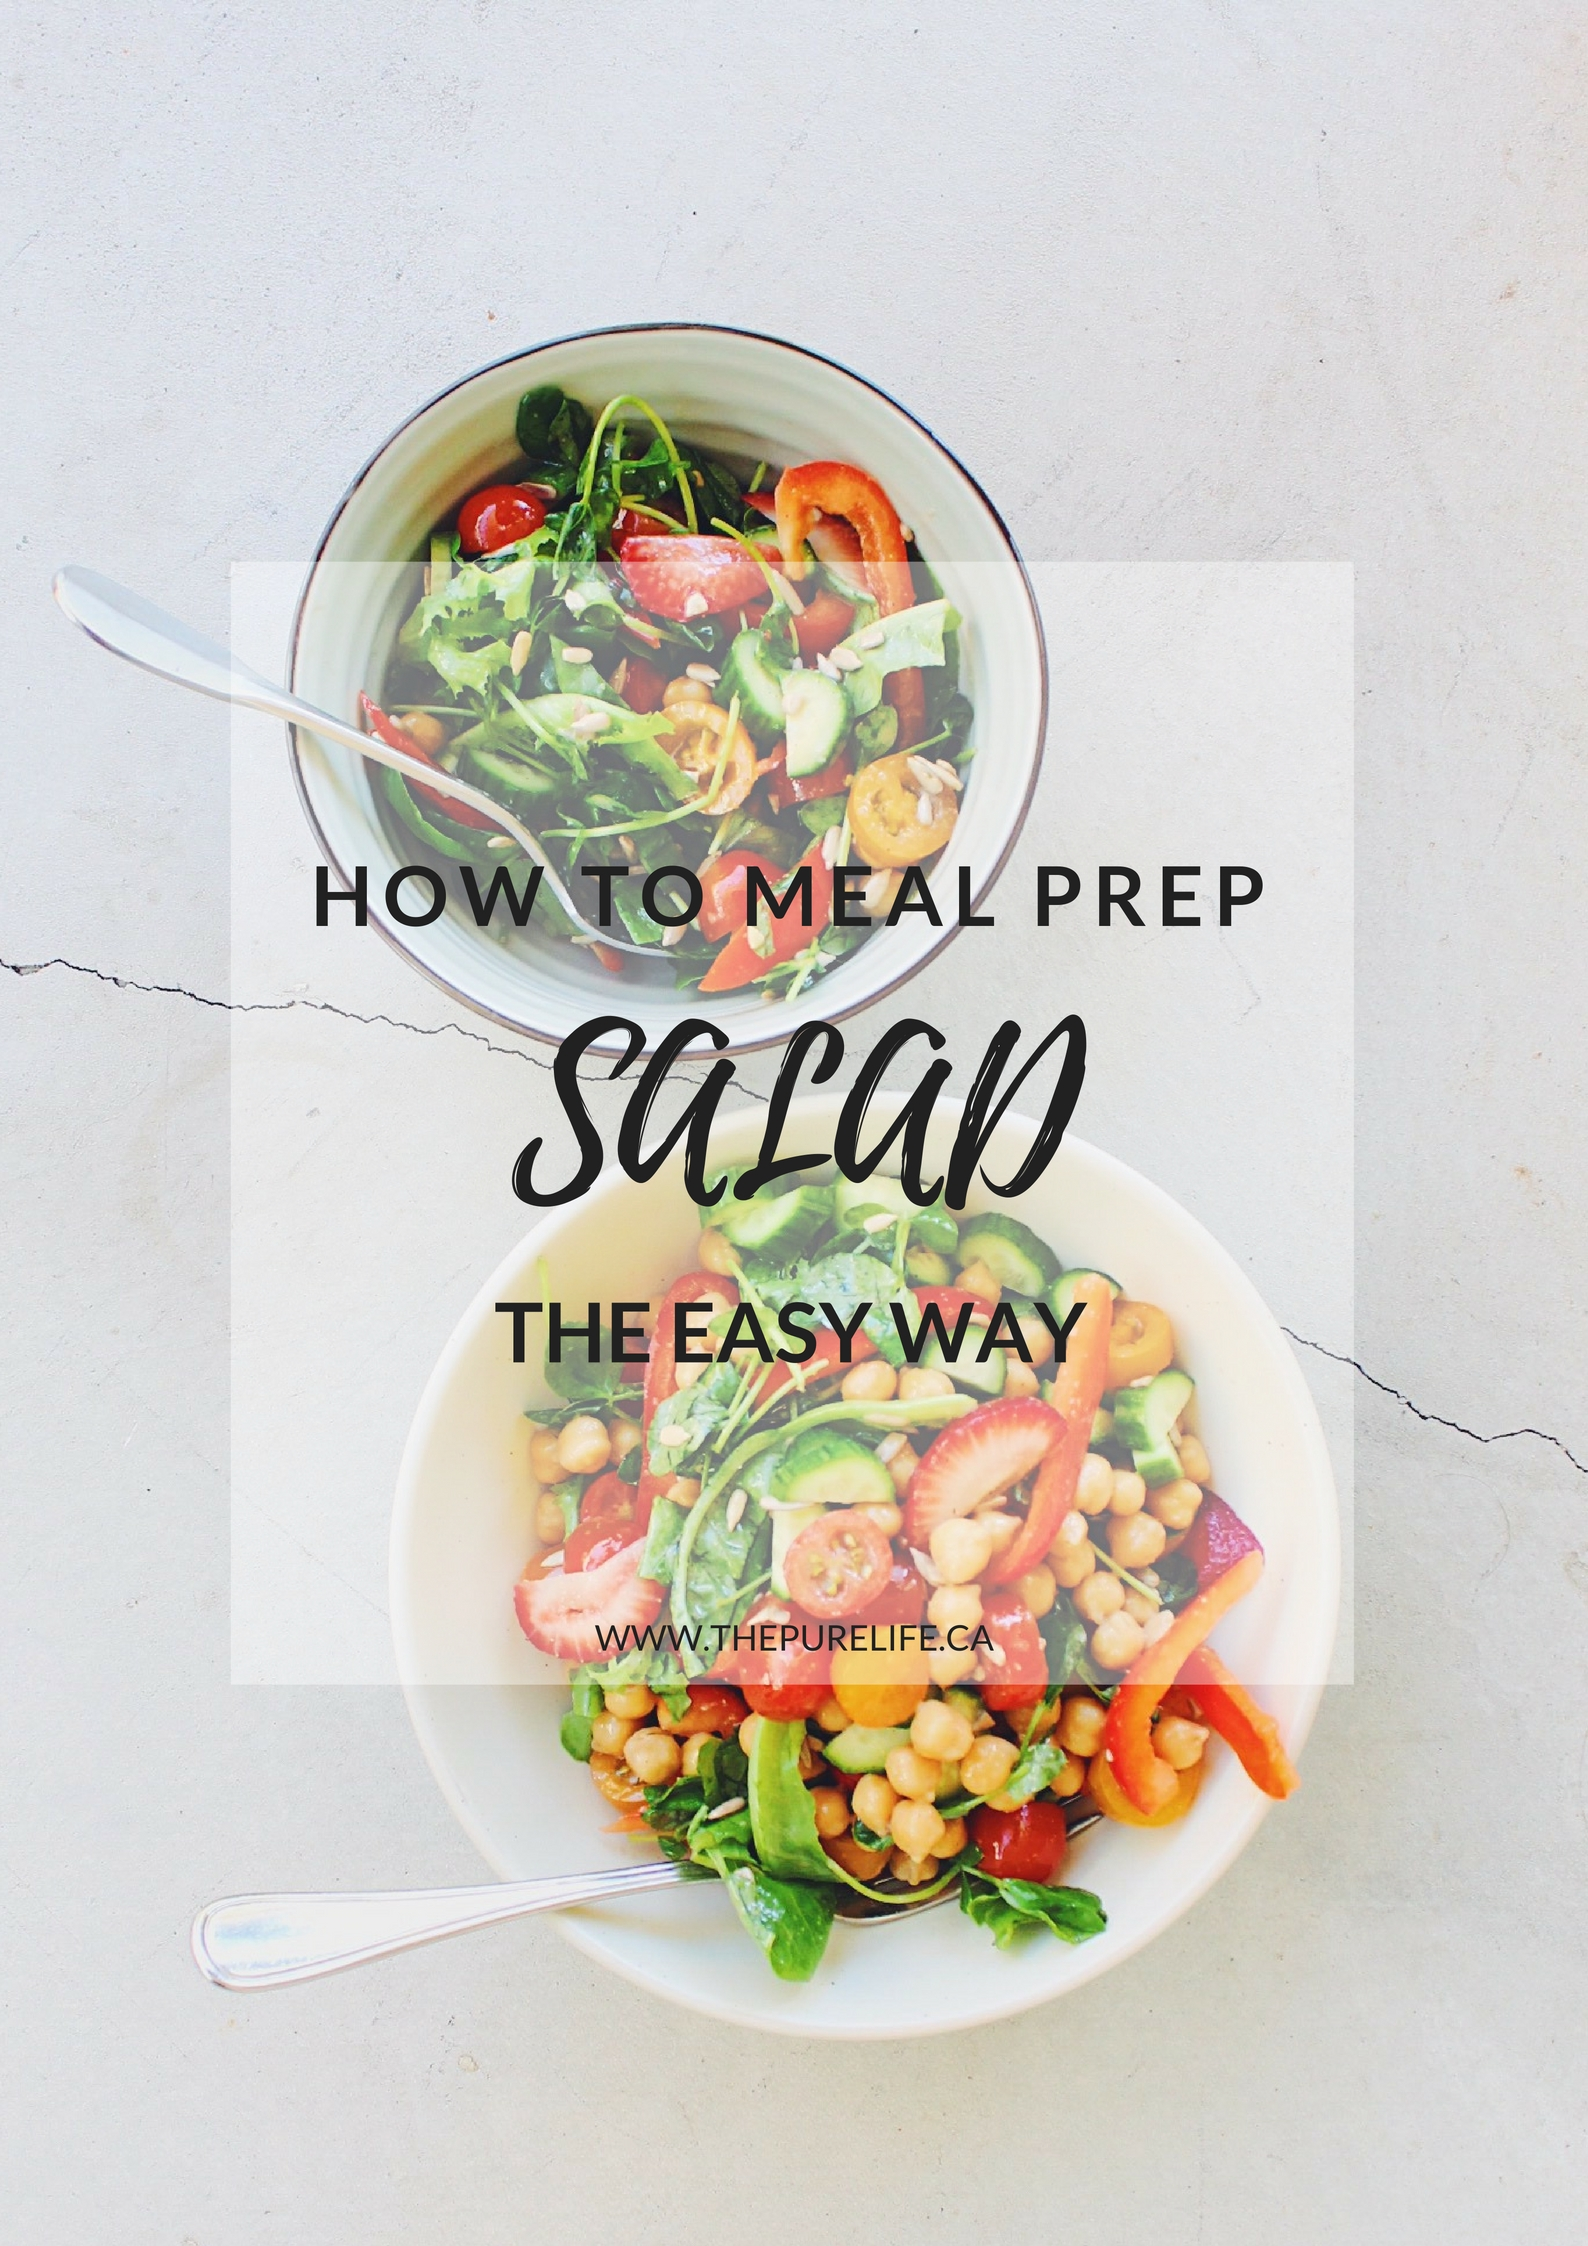 How to Meal Prep Salad